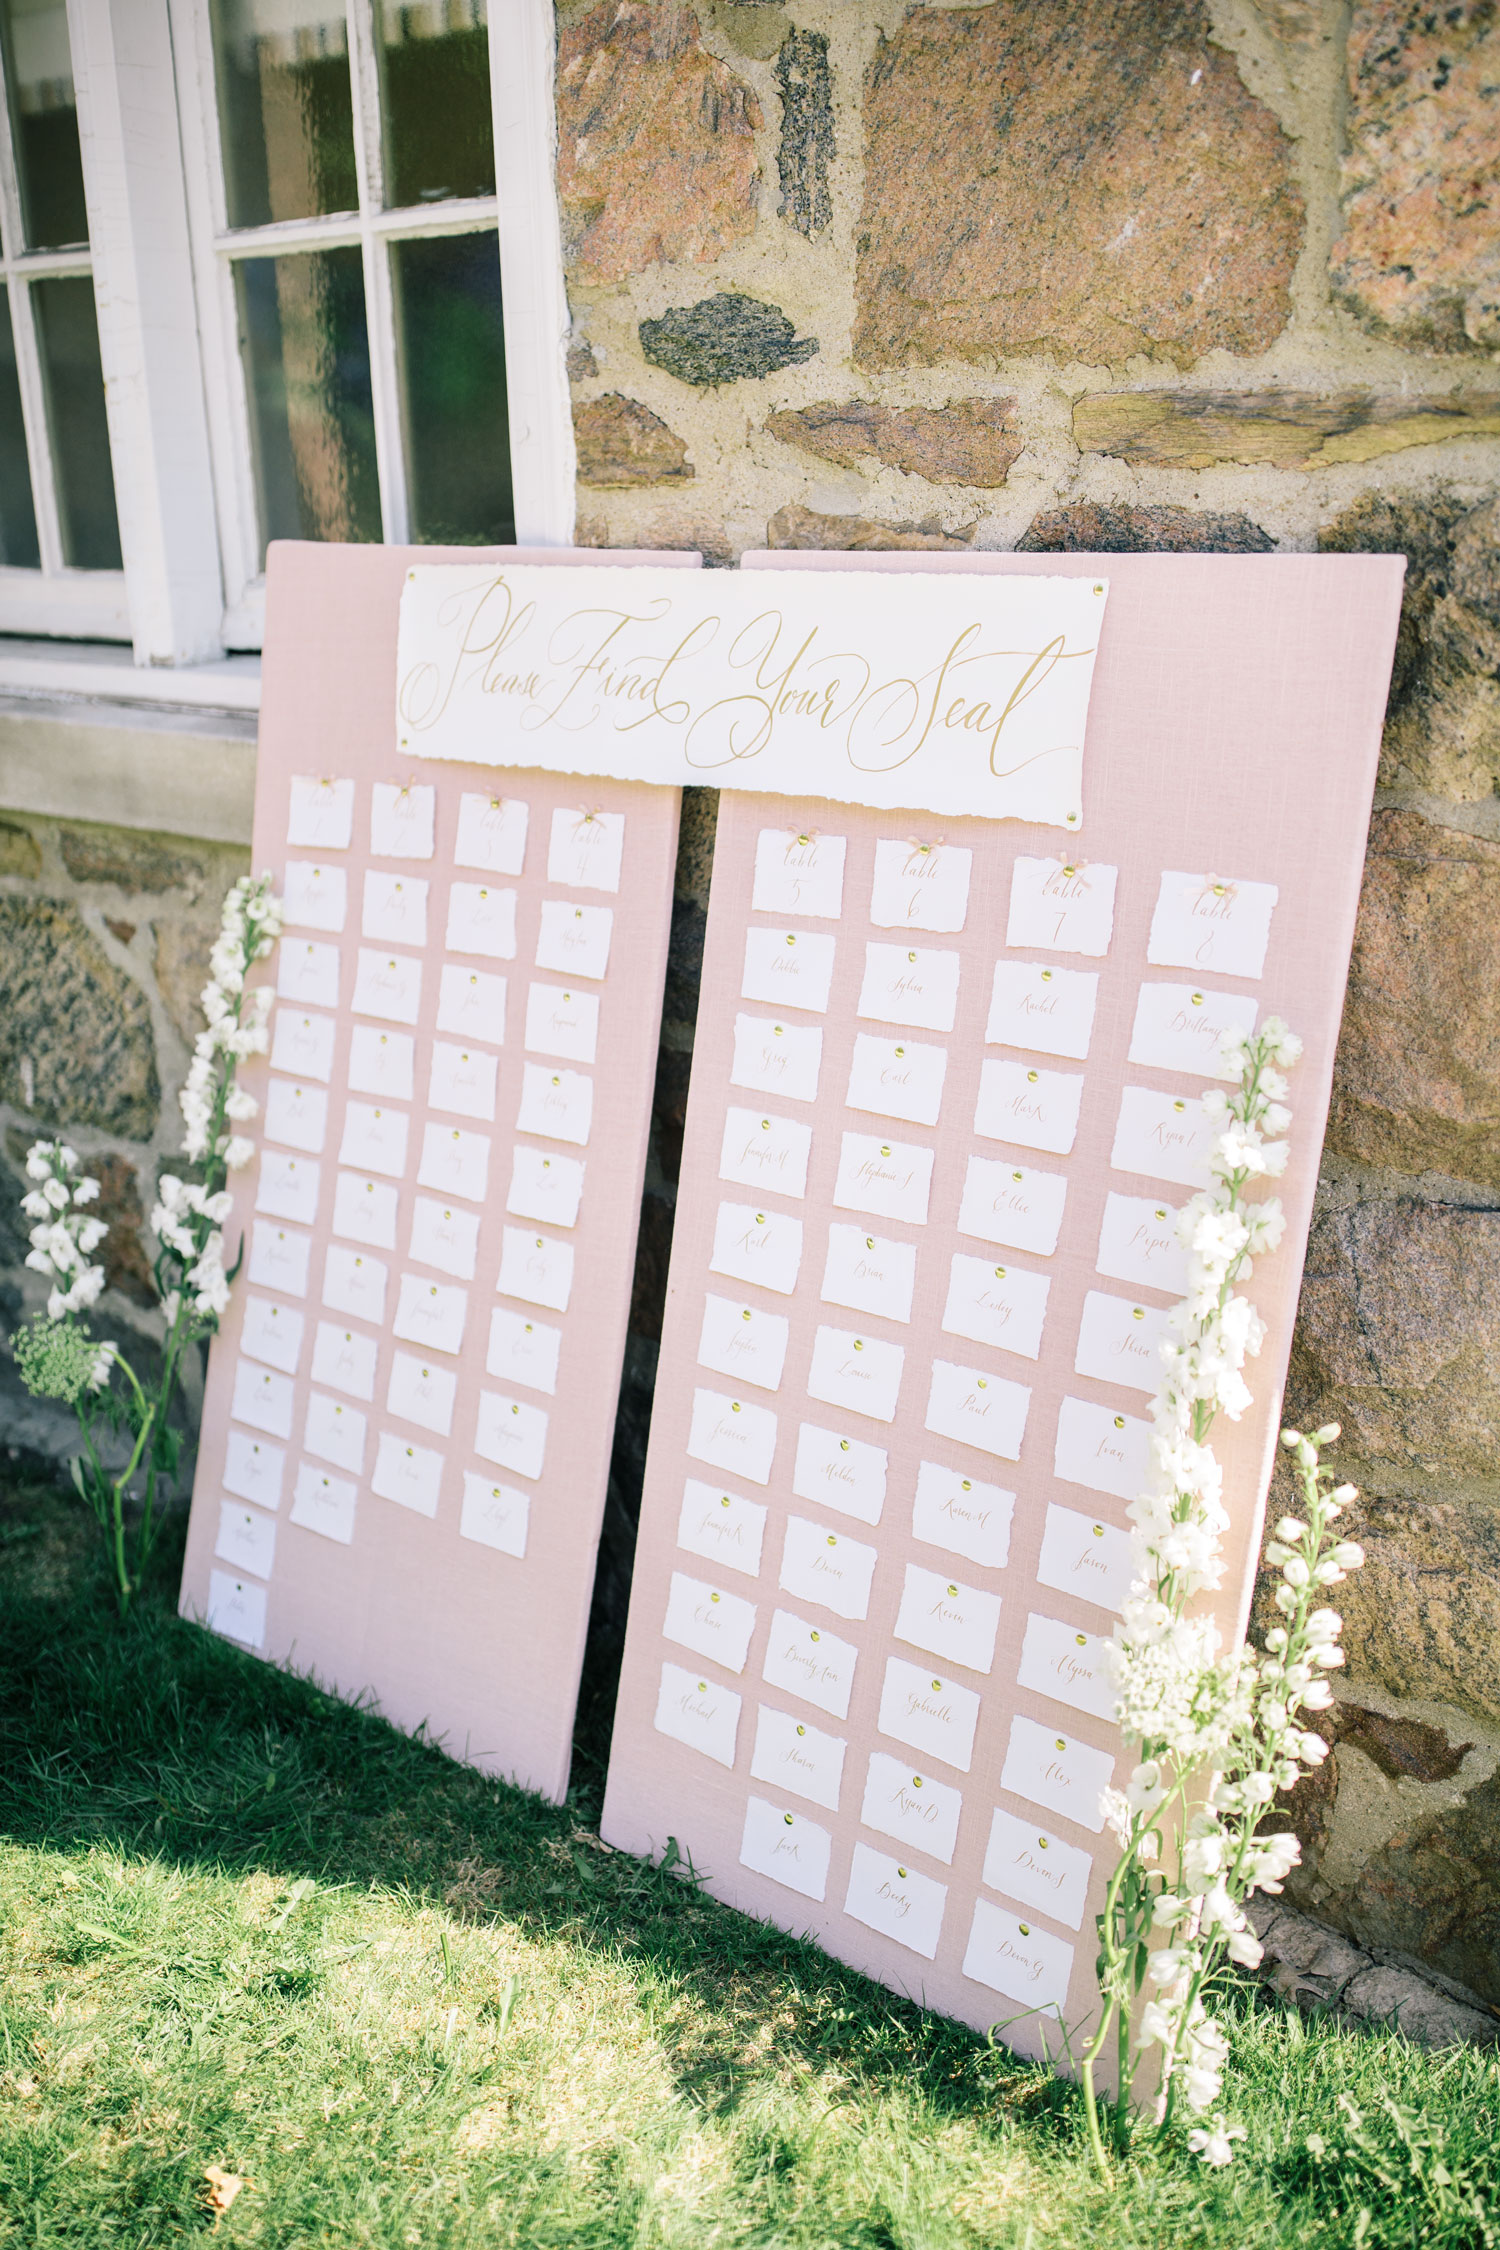 My diy wedding seating chart the blondielocks life style step 5 using a thin silk ribbon tie a bow around each table number pin this is optional but i think it looks really cute and helps define the table solutioingenieria Choice Image